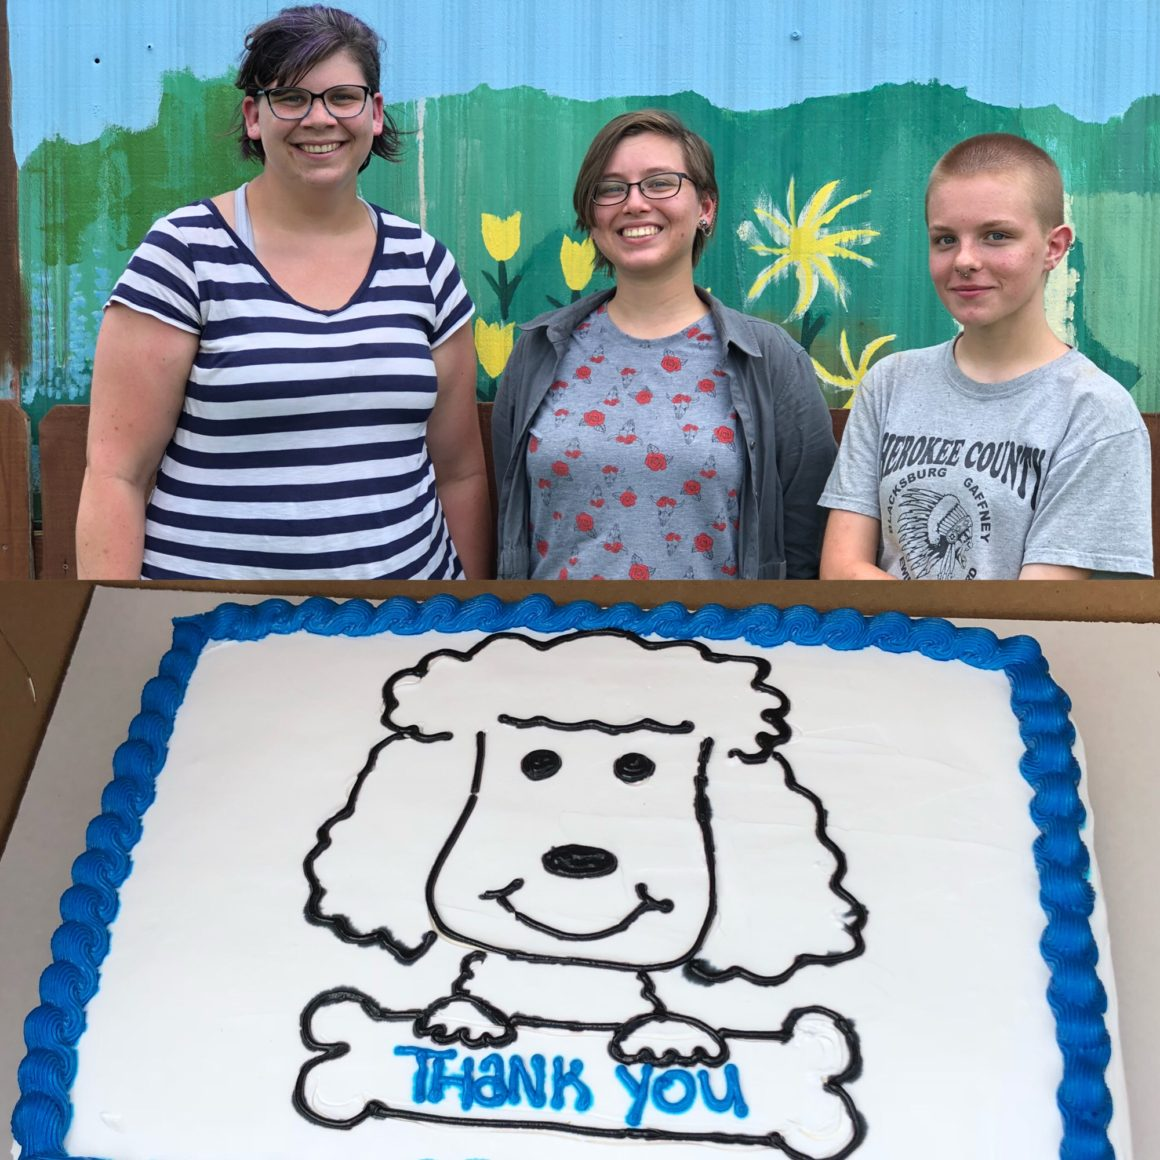 Our Summer 2018 Experiment – Thank you to Dreamweaver Farm's first interns!